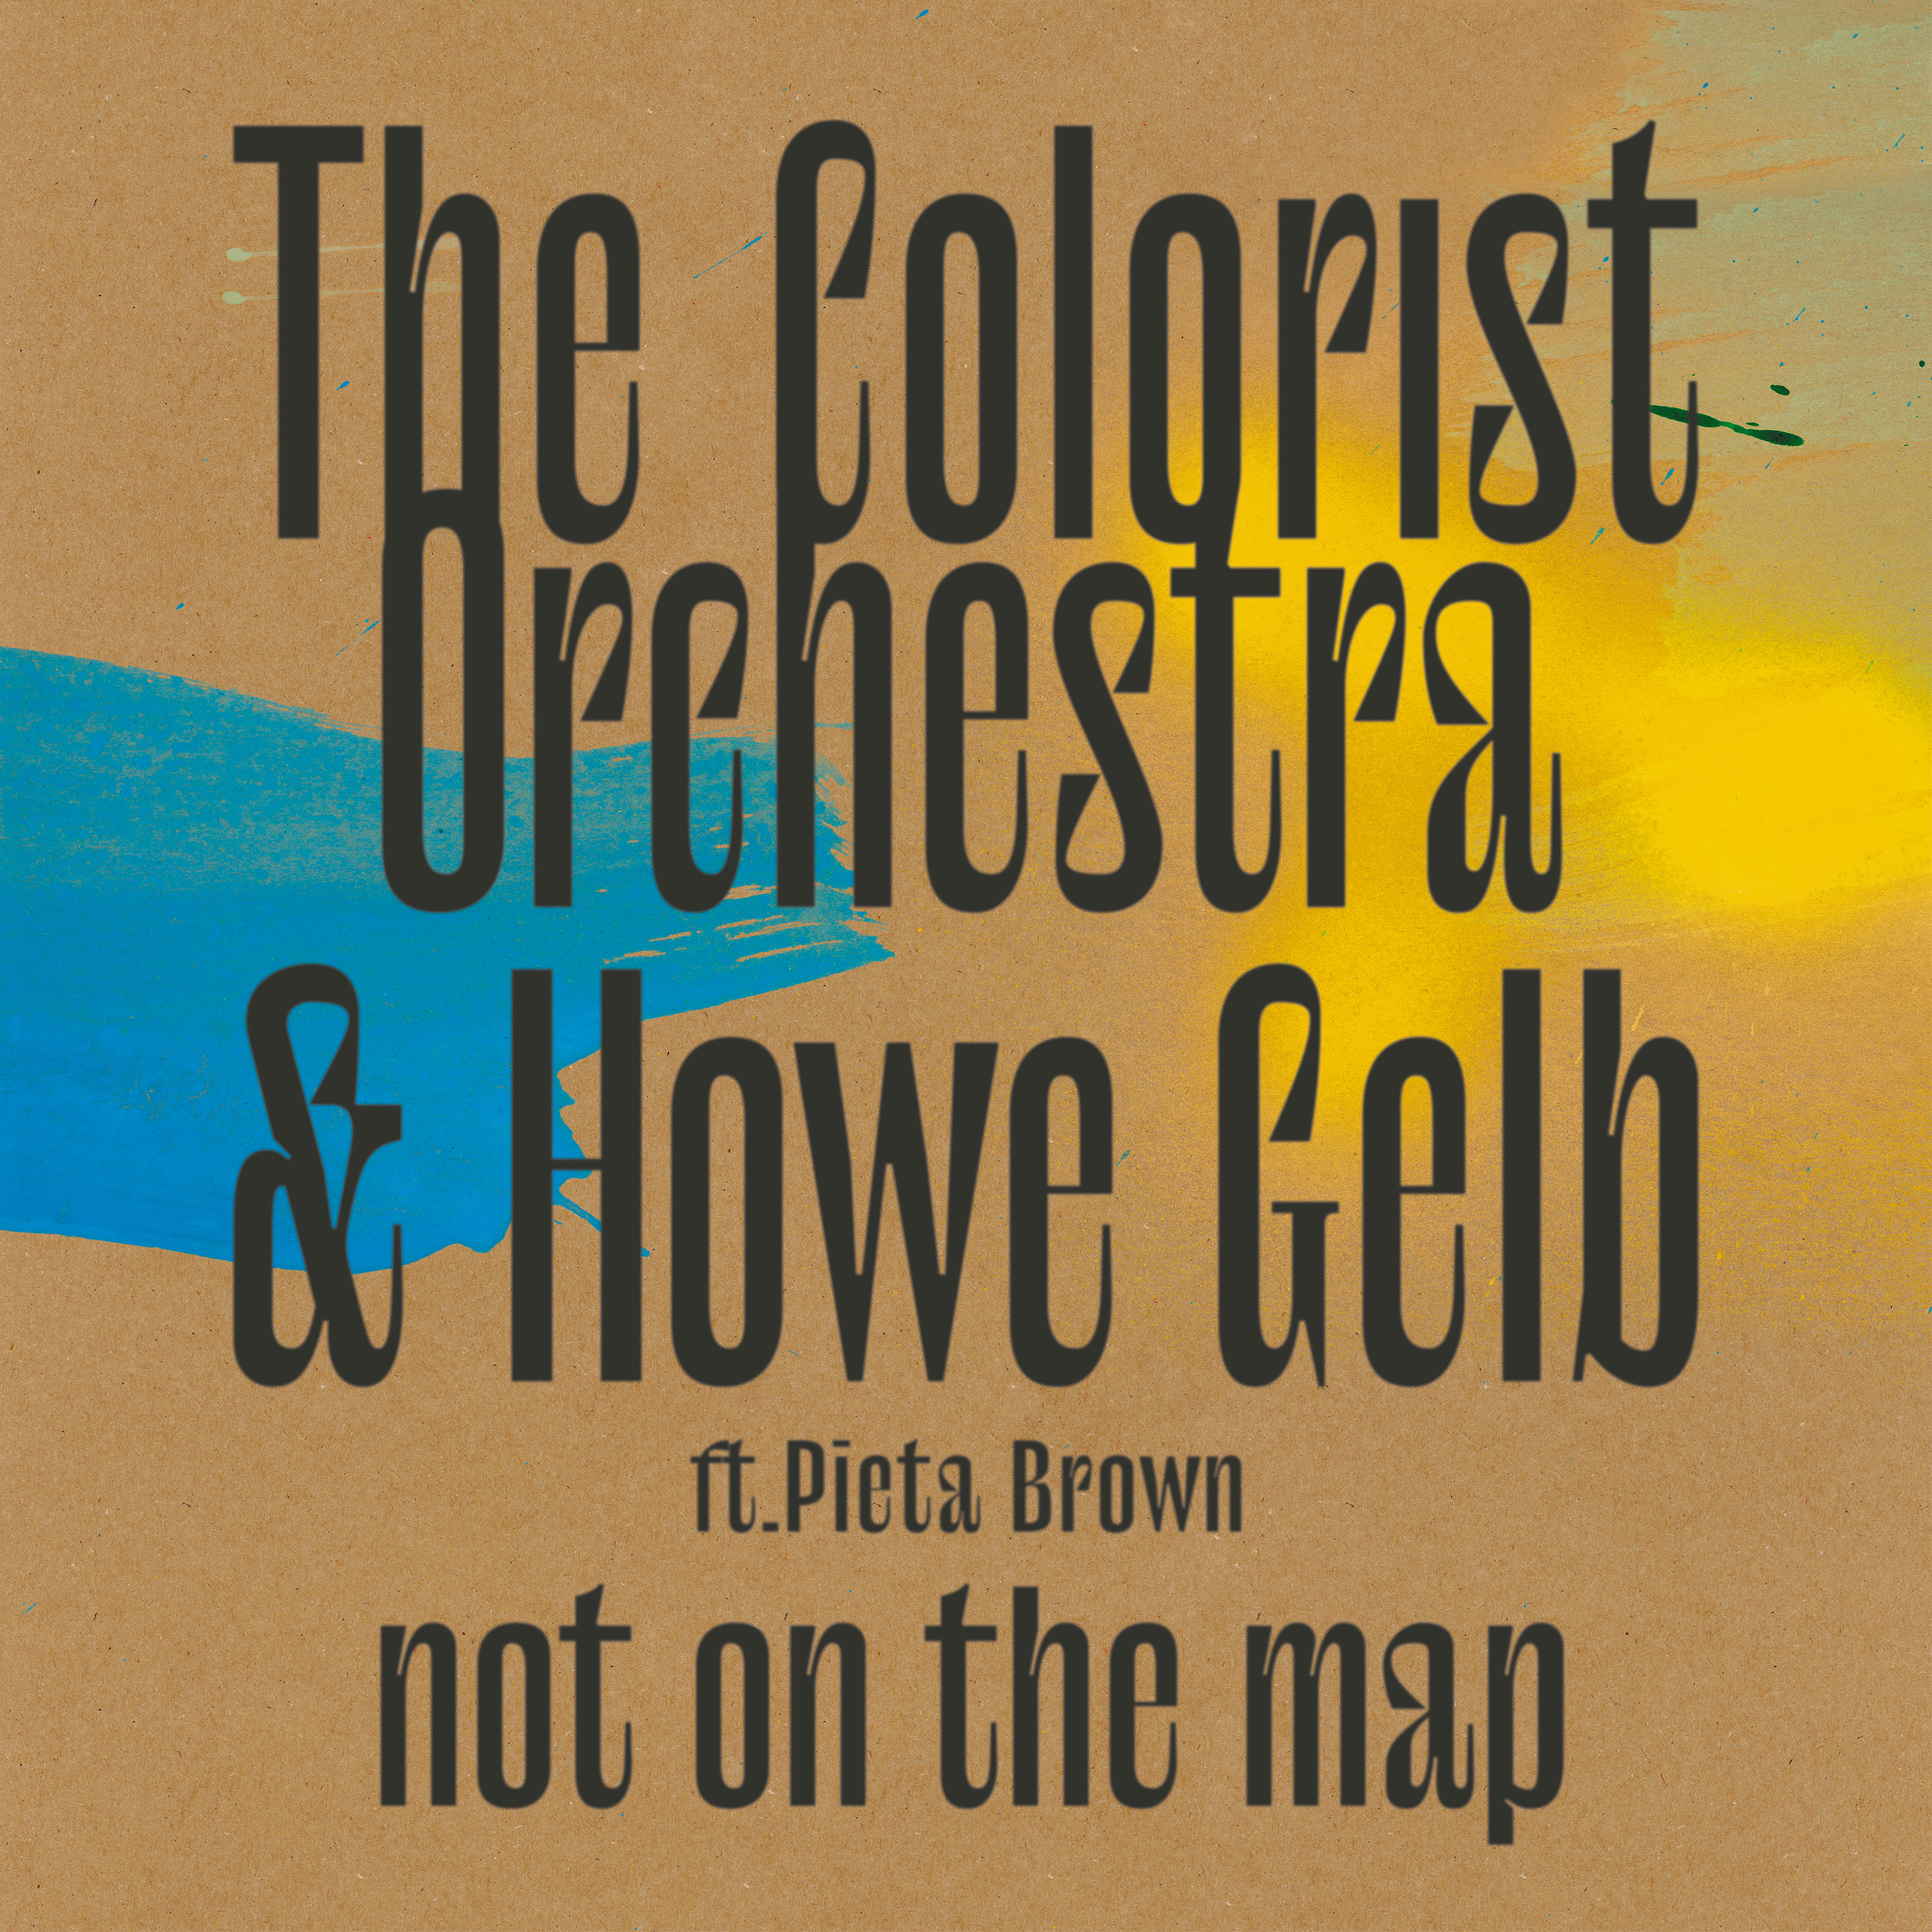 The Colorist Orchestra & Howe Gelb - Not On The Map - Digital Bundle